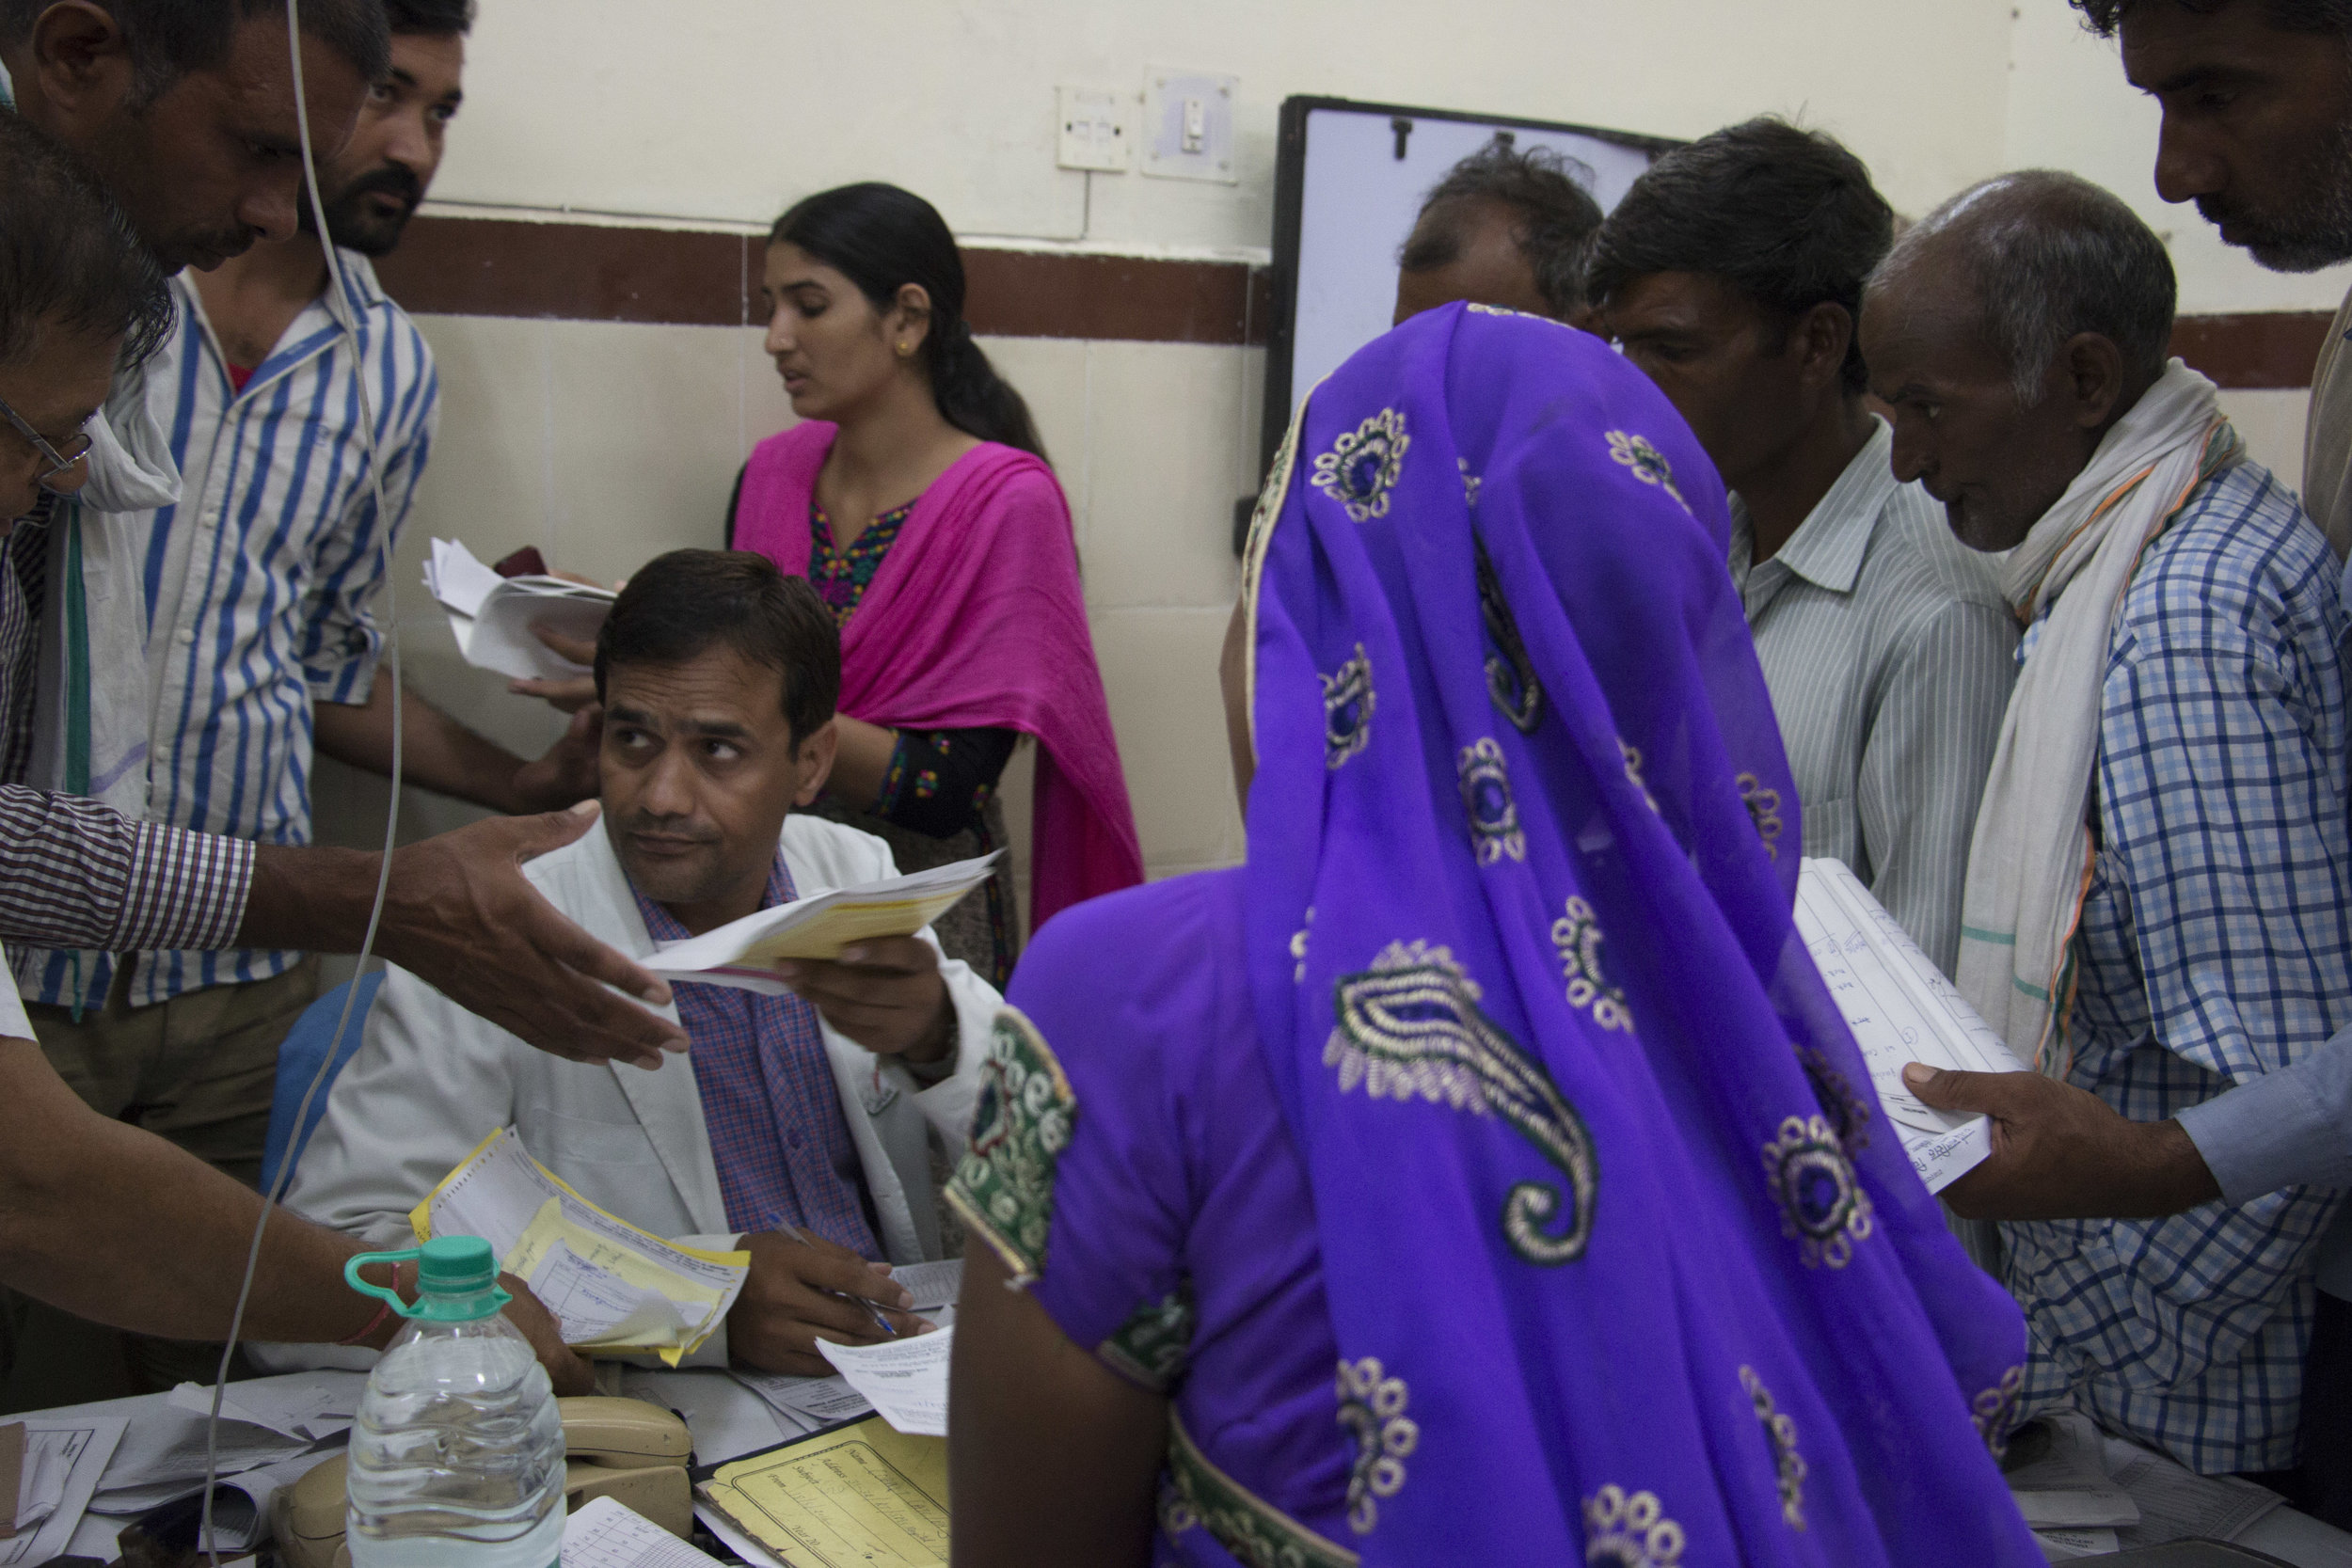 Oncology OPD, Sawai Man Singh Hospital, Jaipur.  The number of patients seeking treatment has increased drastically since the inception of the Scheme. It has put an additional burden on the medical infrastructure.People often wait in queues for hours. Despite the problems, this Scheme has a wide reach and has been able to help the ones in need.